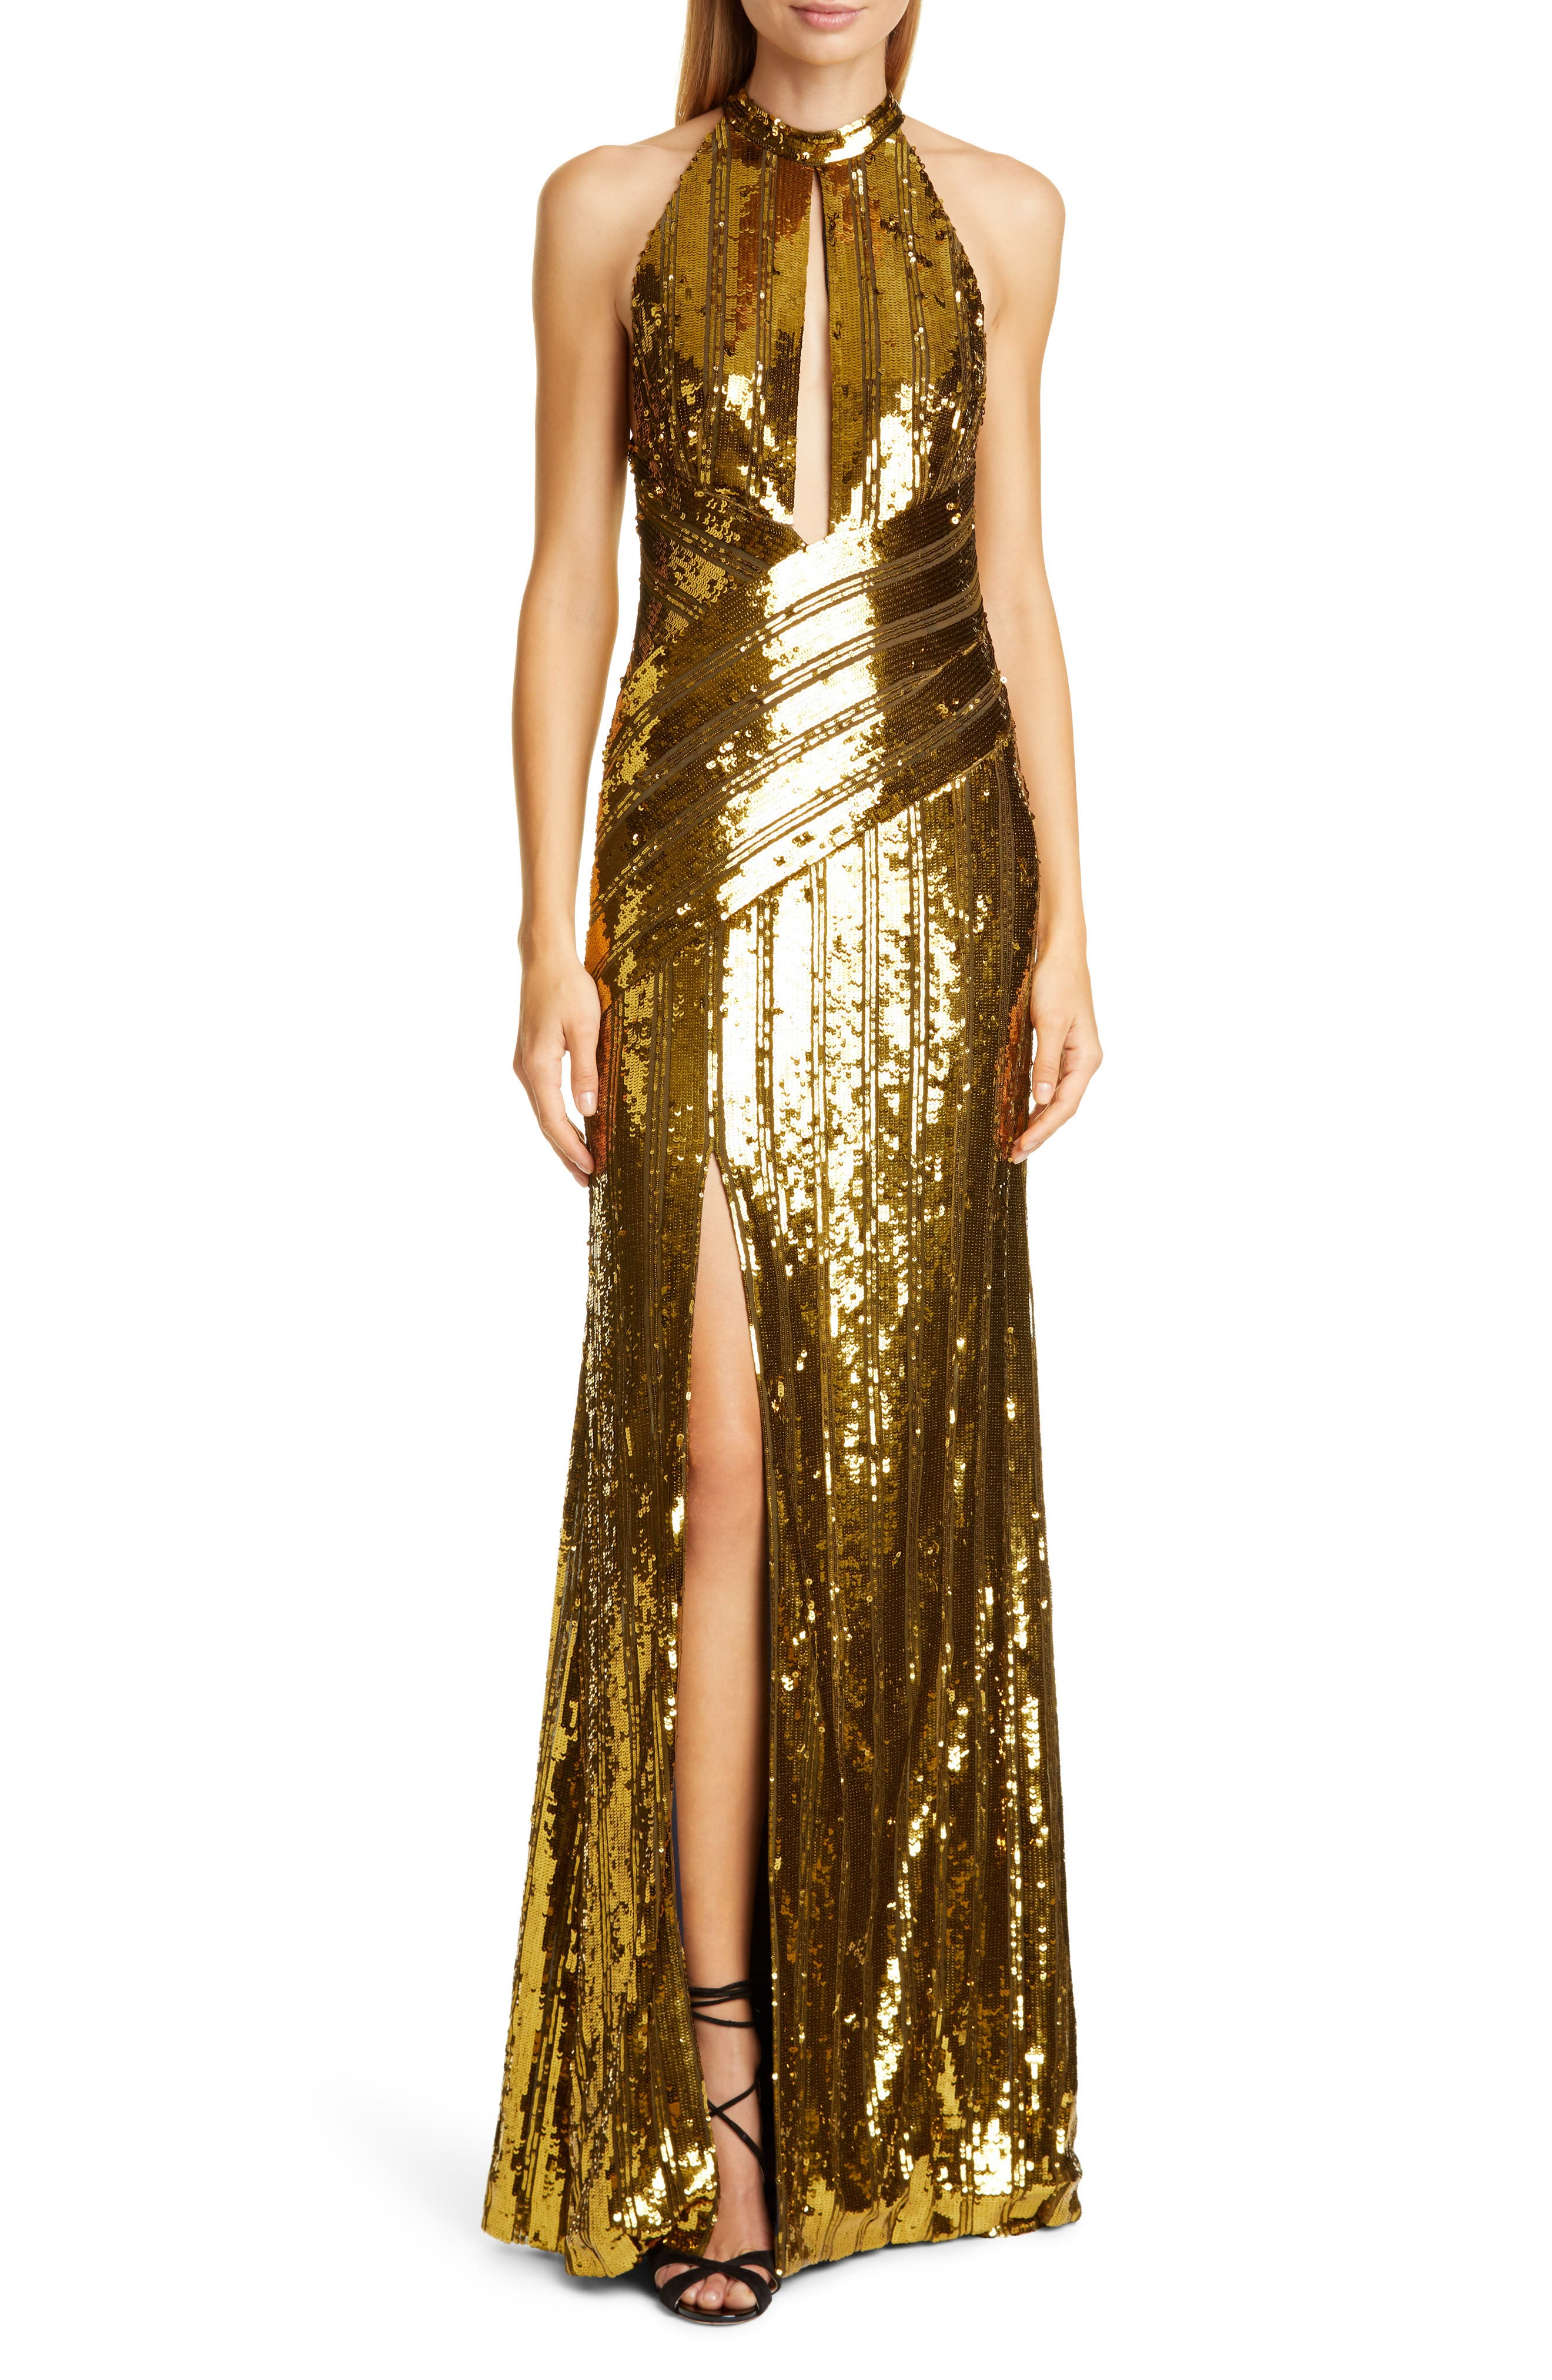 70s Prom, Formal, Evening, Party Dresses Womens Galvan Peekaboo Cutout Sequin Halter Gown $2,350.00 AT vintagedancer.com